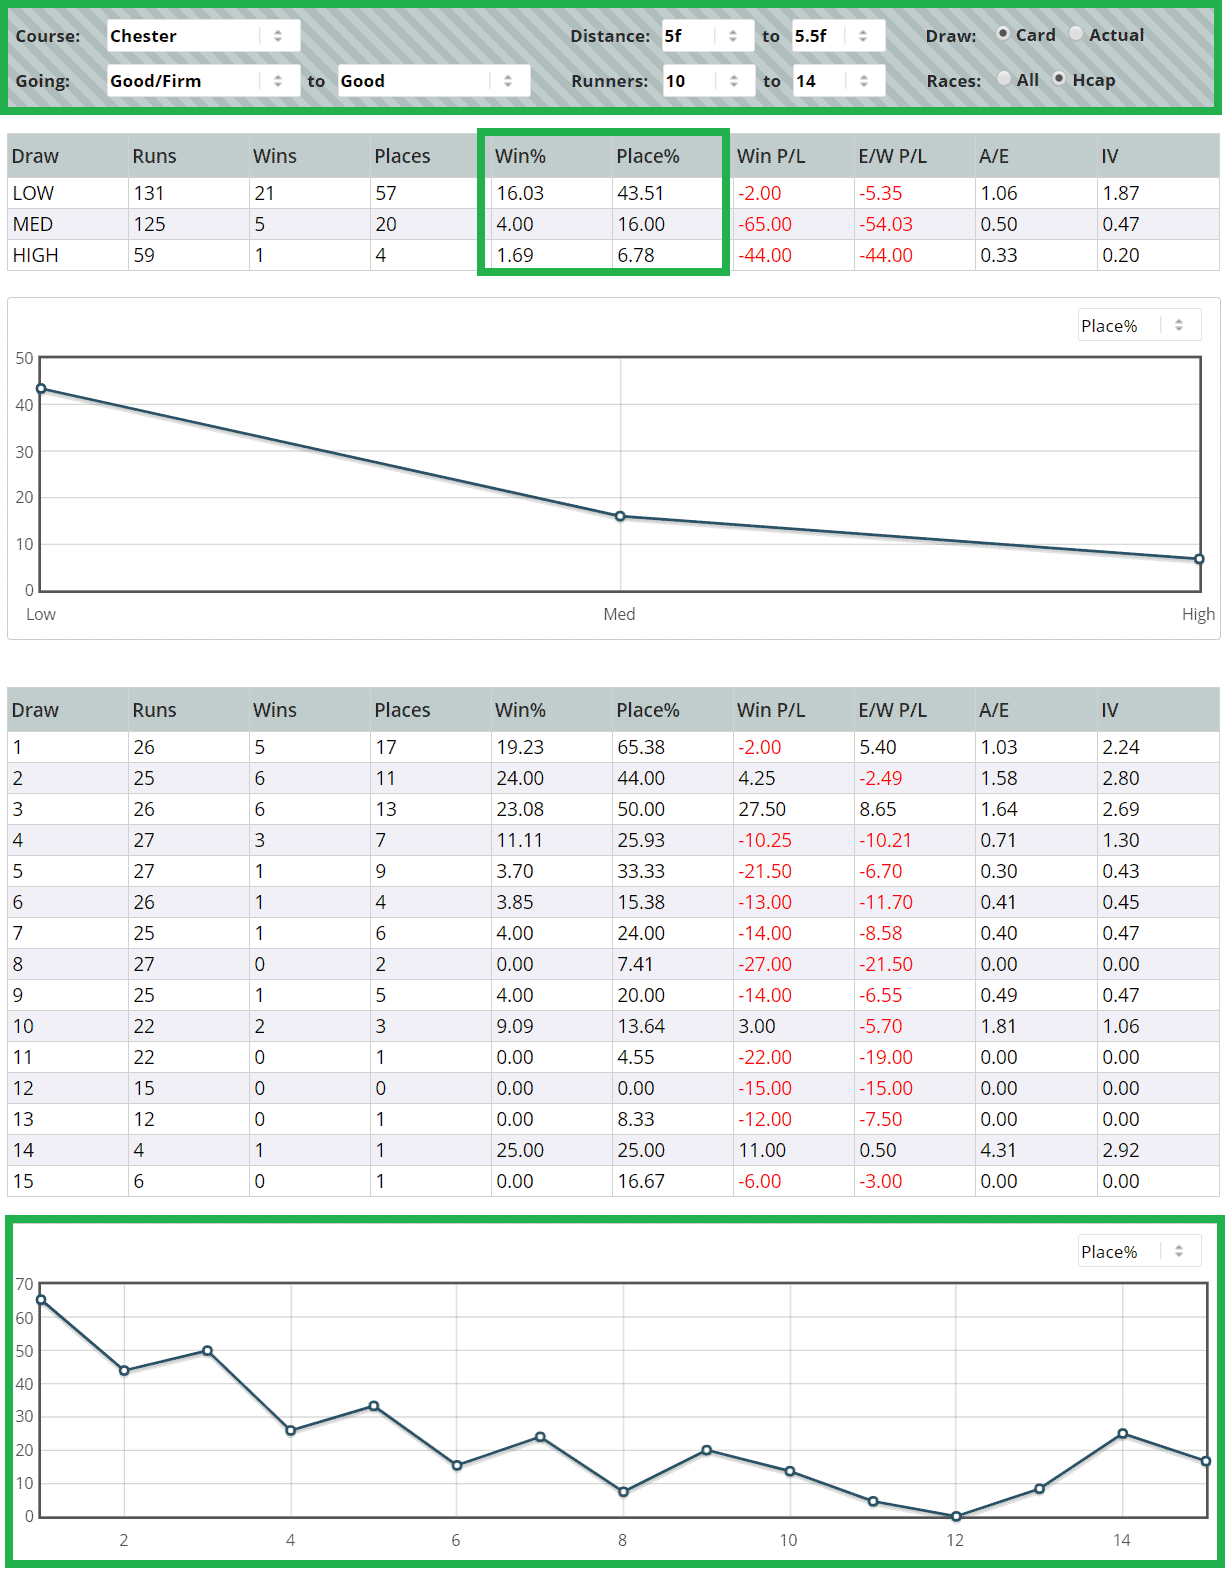 Low is heavily favoured at the shortest trips; and high is heavily UNfavoured